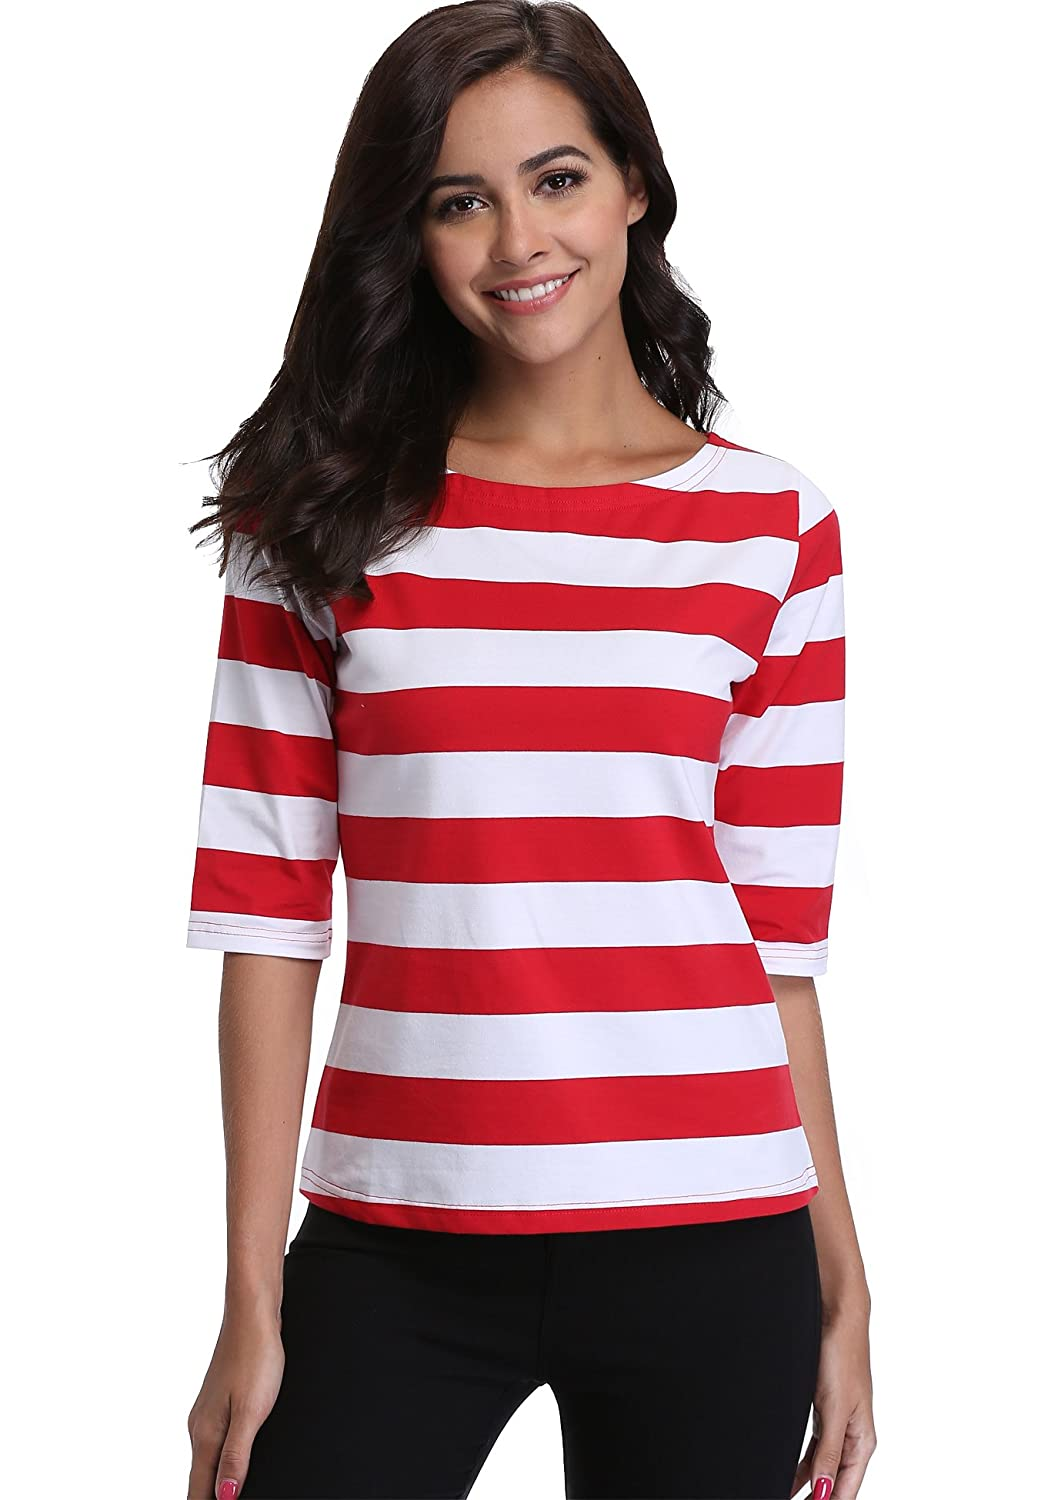 Miss Moly Womens Shirts and Blouses Striped Casual Tops Ladies Tunic Short Sleeves Classic Boat Neck Basic Contrast Color